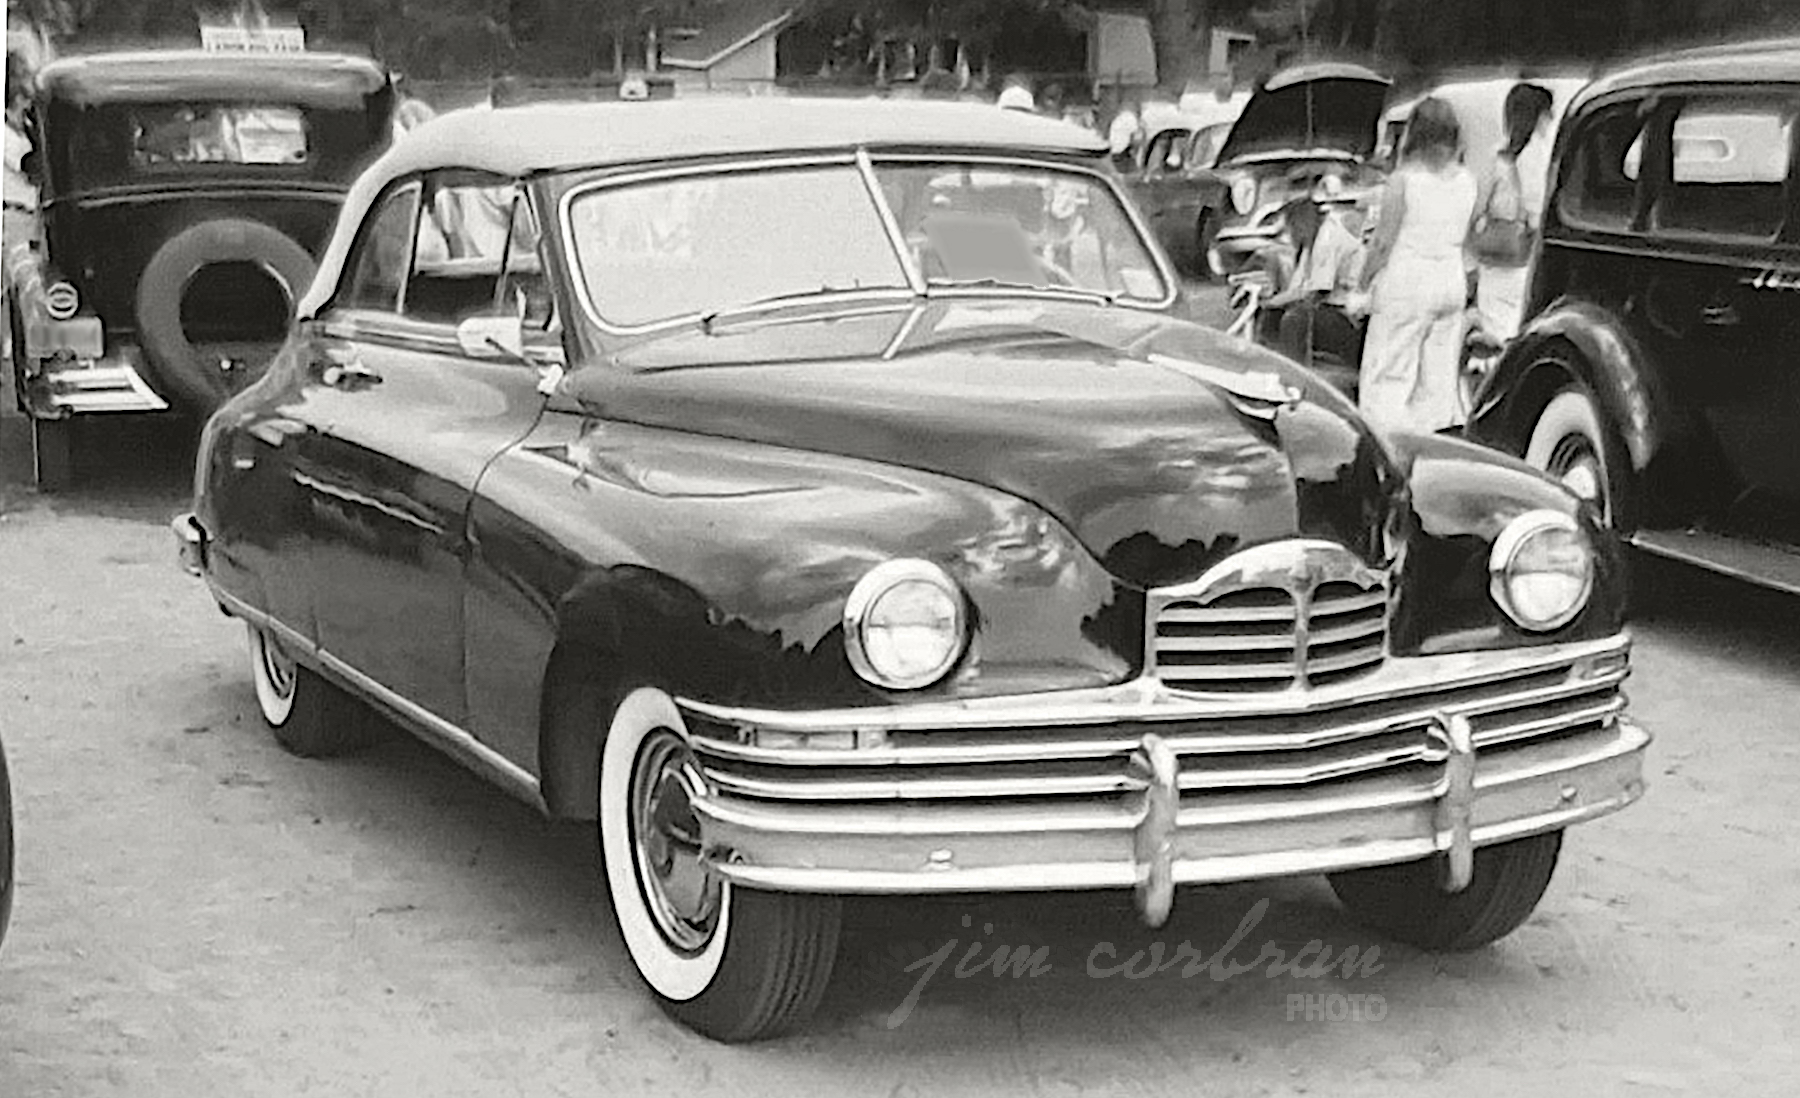 RealRides of WNY - 1948 Packard